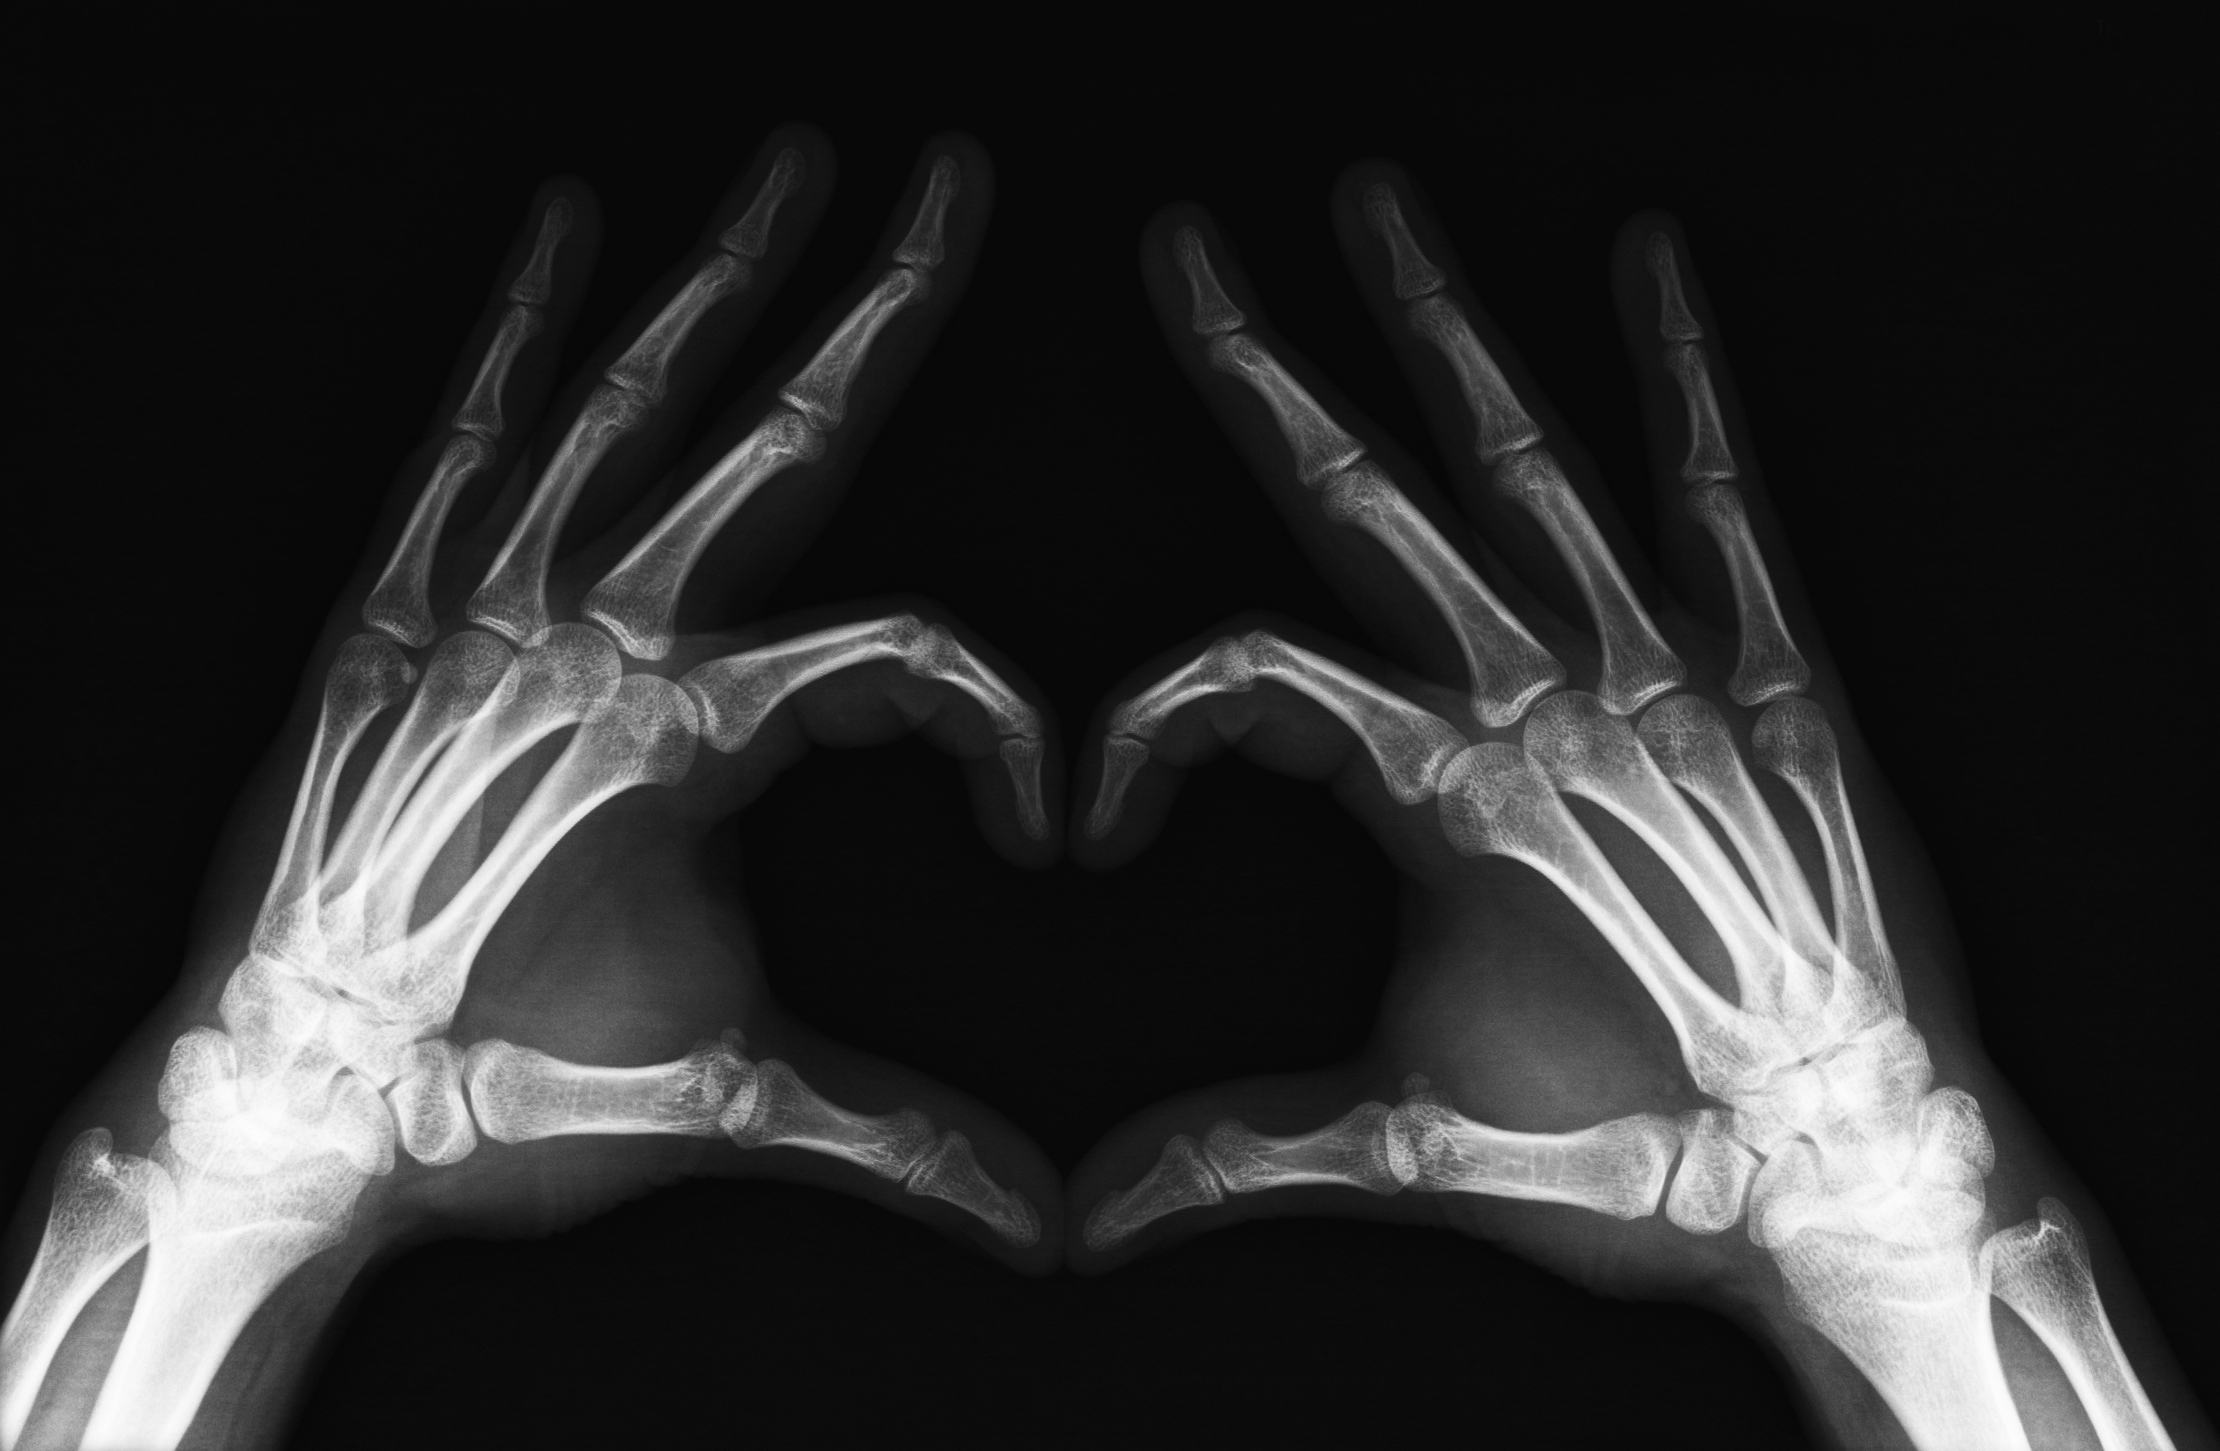 X-ray Backgrounds, Compatible - PC, Mobile, Gadgets| 2220x1451 px